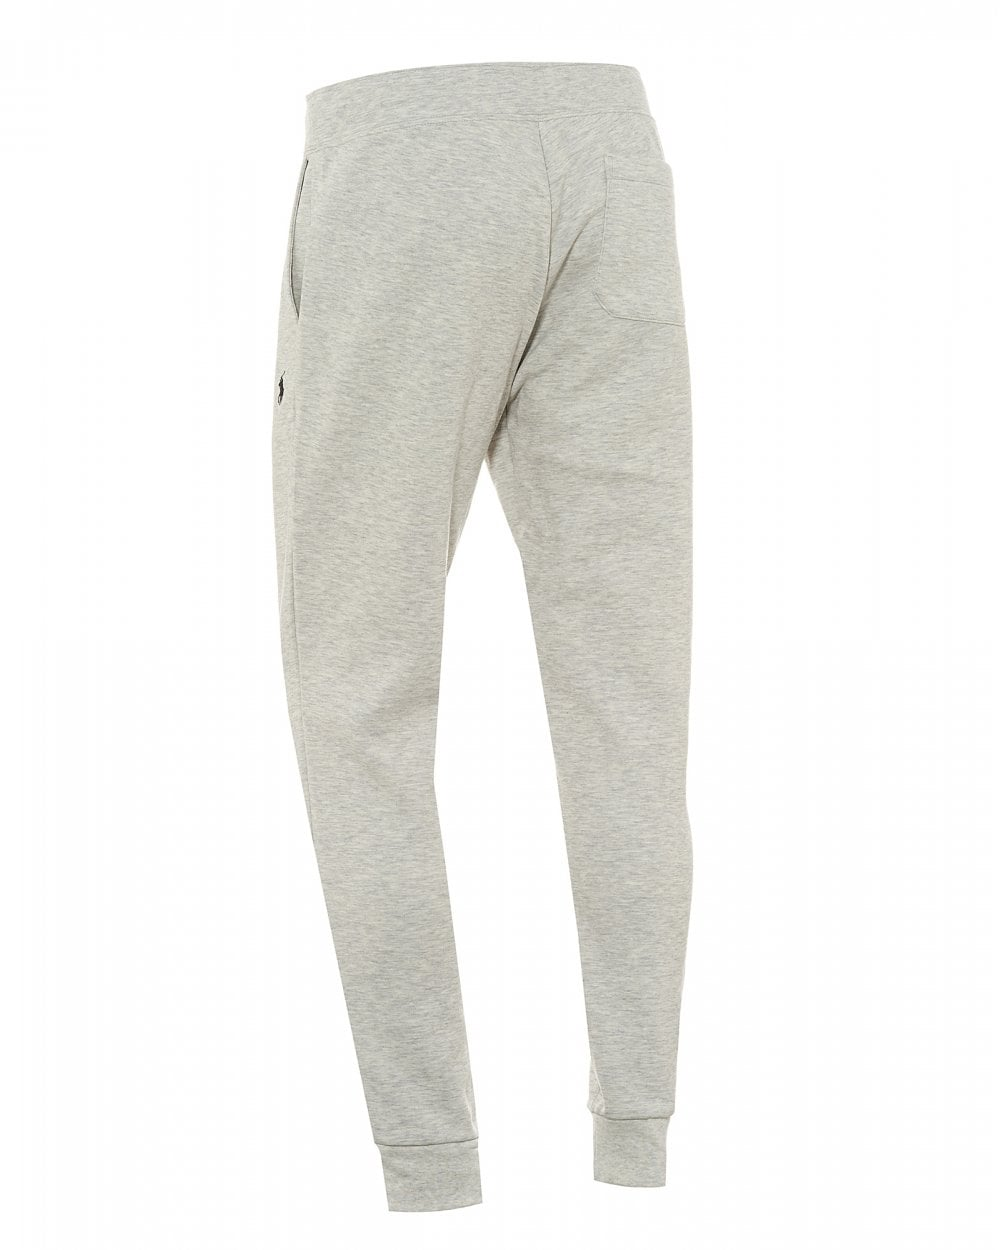 5c81e9972520 Ralph Lauren Mens Tech Fleece Joggers